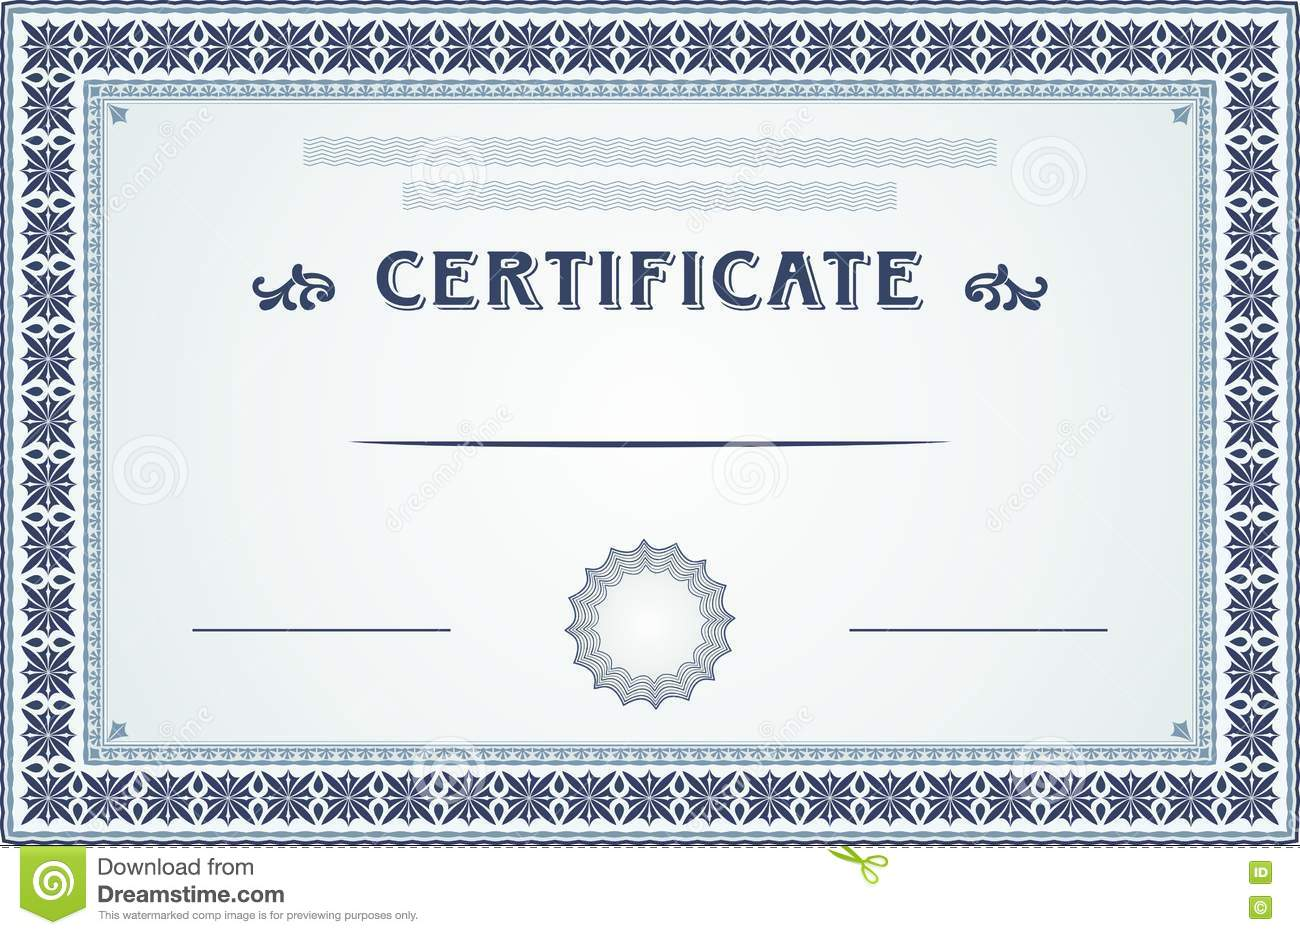 certificate border and template design - Certificate Border Design Templates